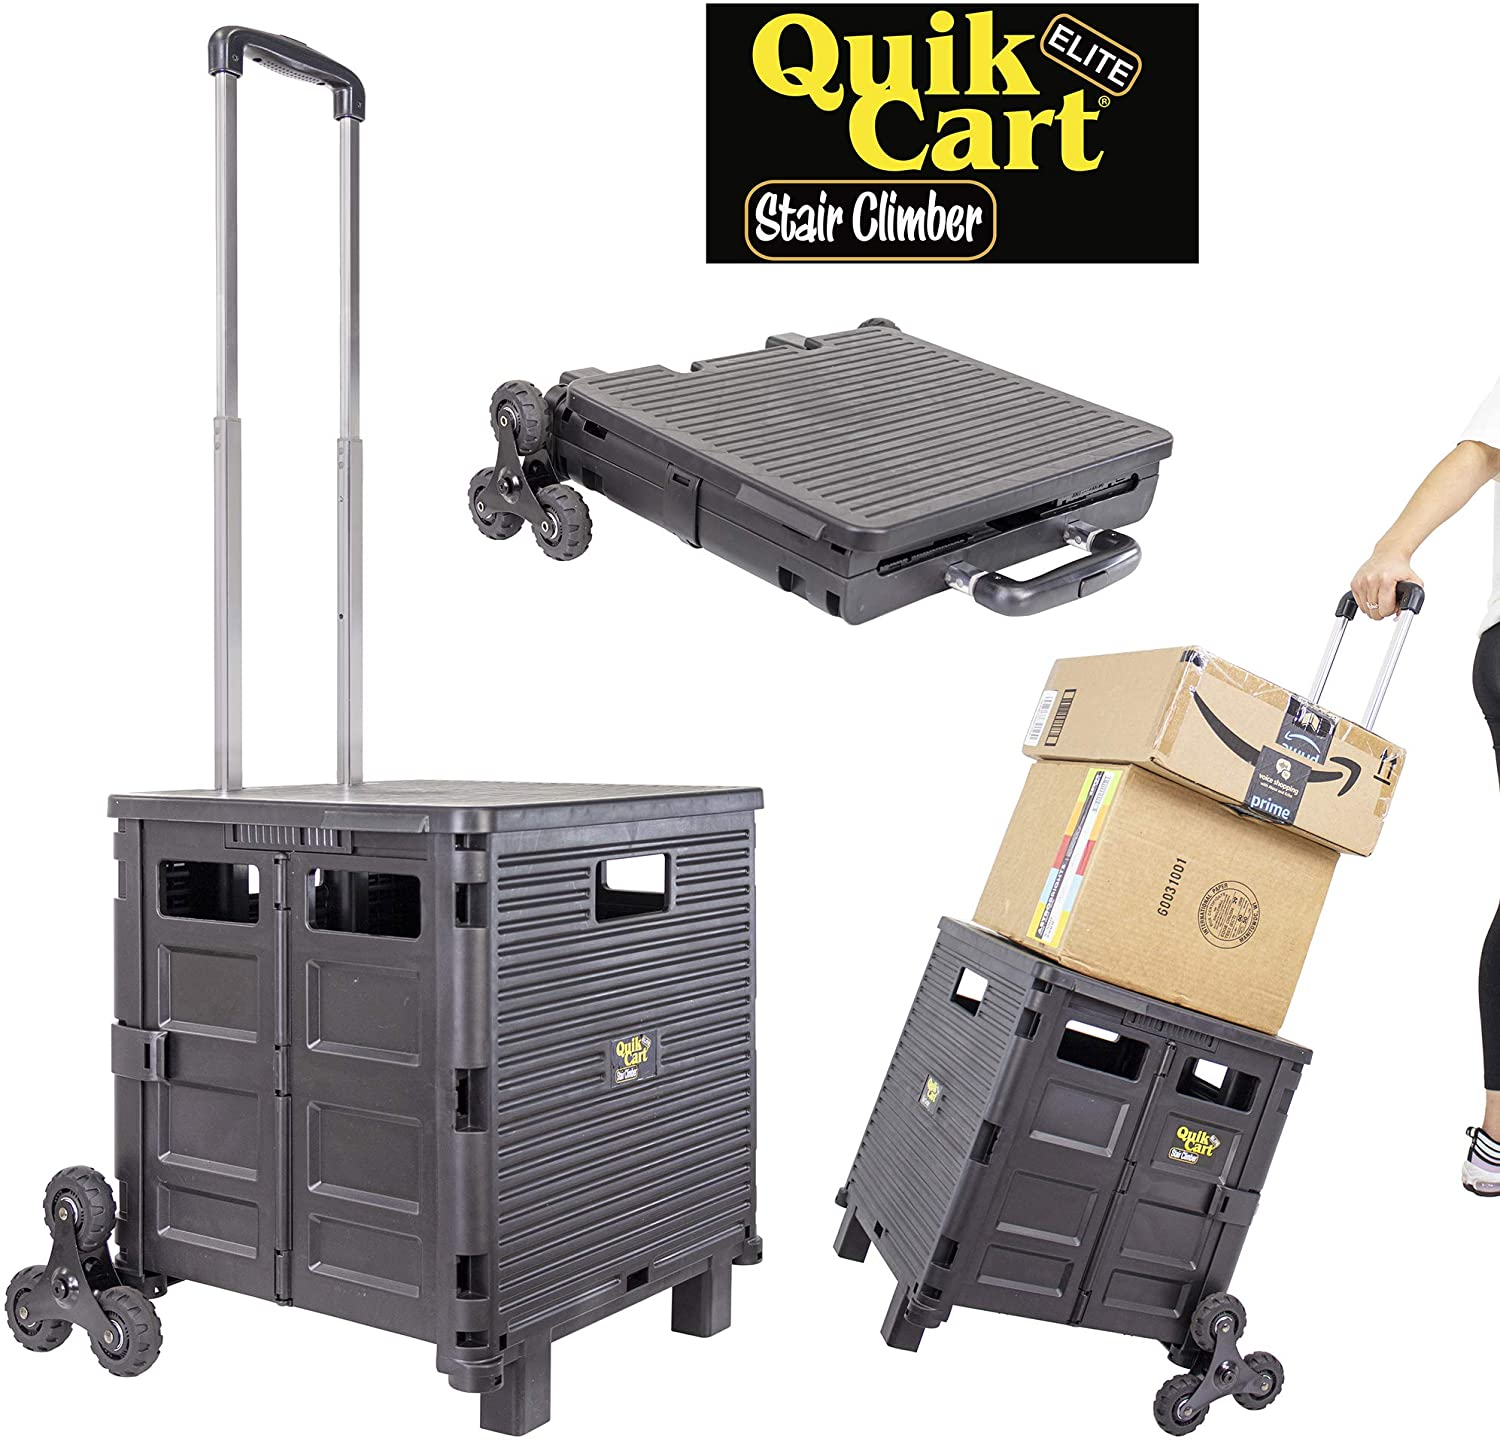 dbest products Quik Cart Elite Stair Climber Wheeled Rolling Crate Teacher Utility with seat Heavy Duty Collapsible Basket with Handle, Black